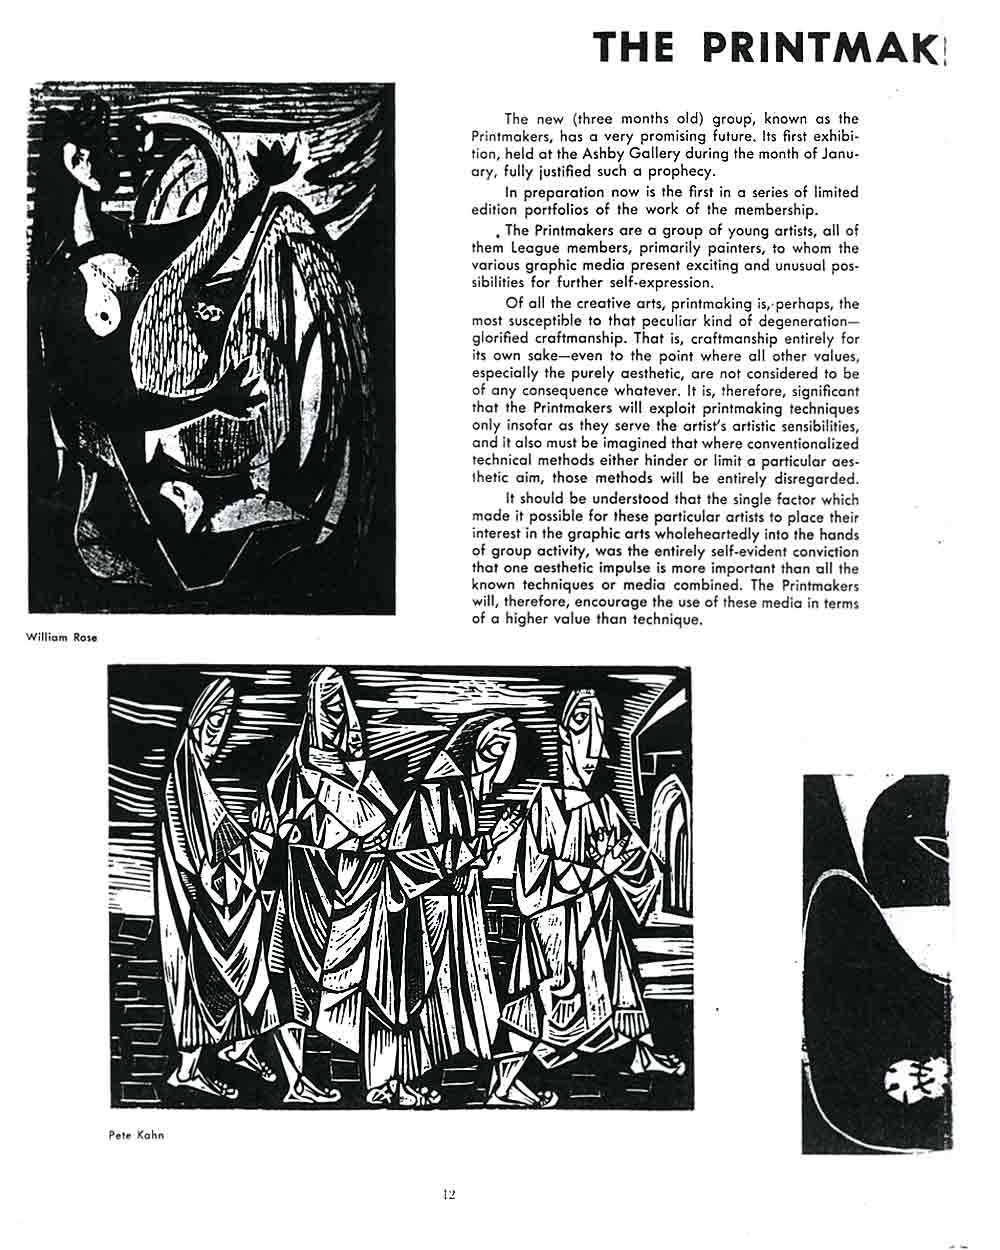 The Printmakers, pg 1